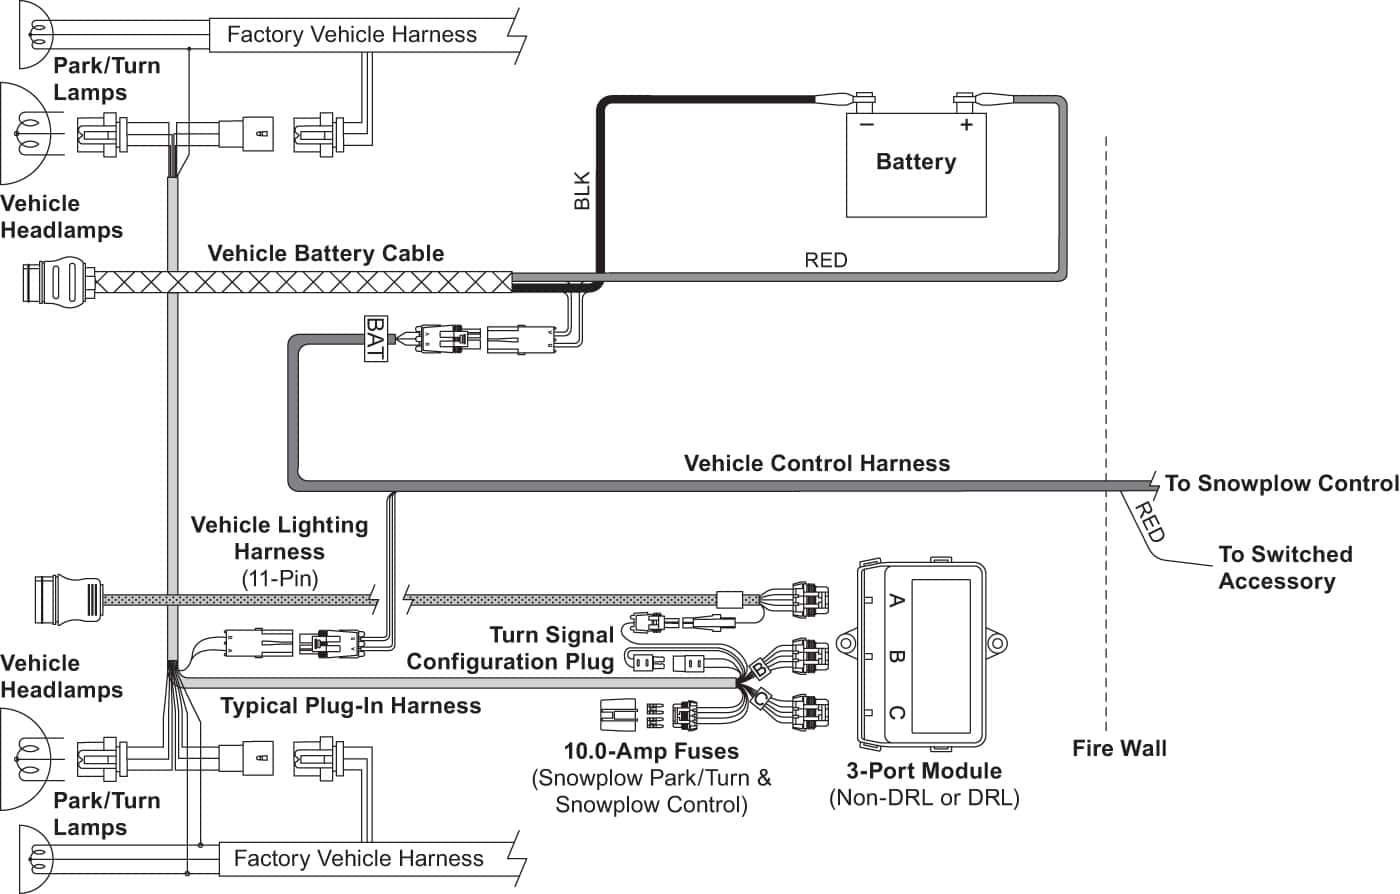 hight resolution of xtremev vehicle side harness diagram 3 port 2 plug